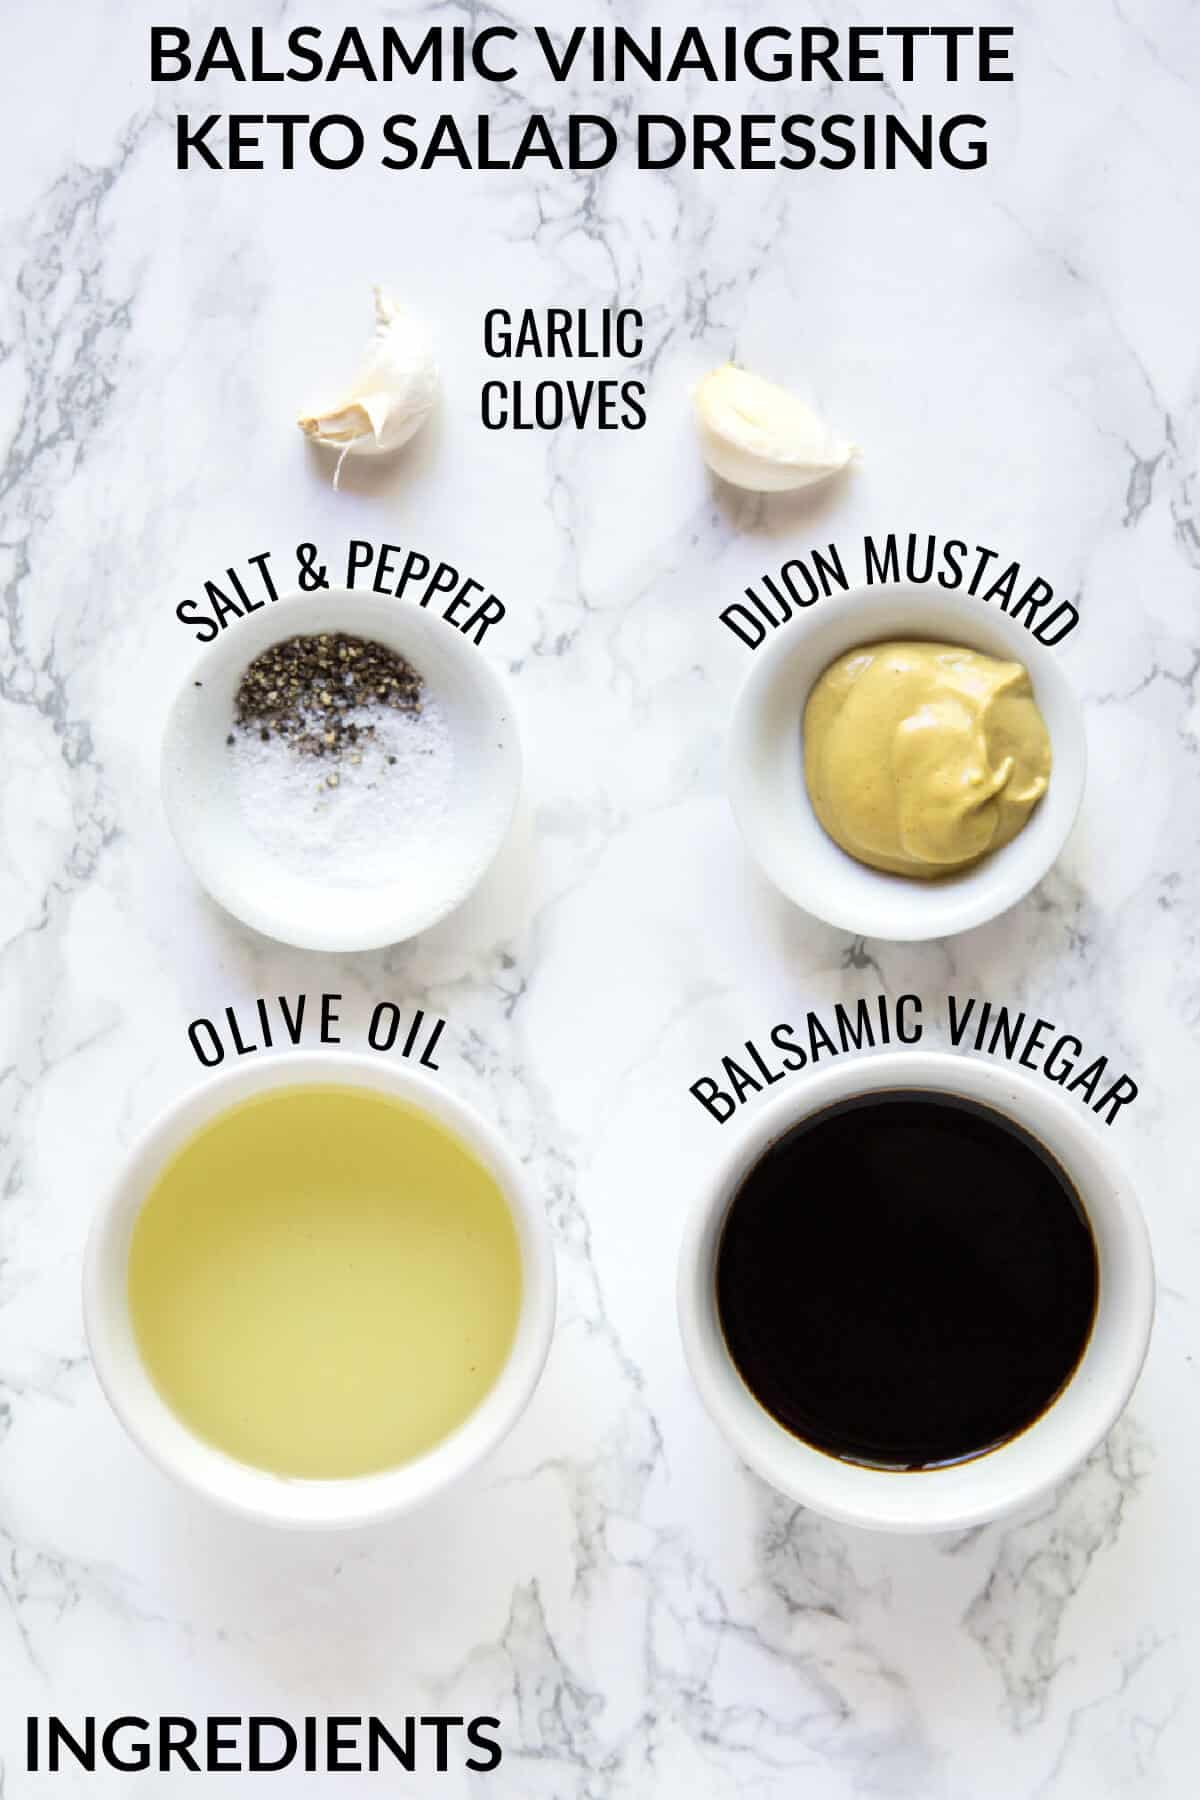 balsamic vinaigrette salad dressing ingredients